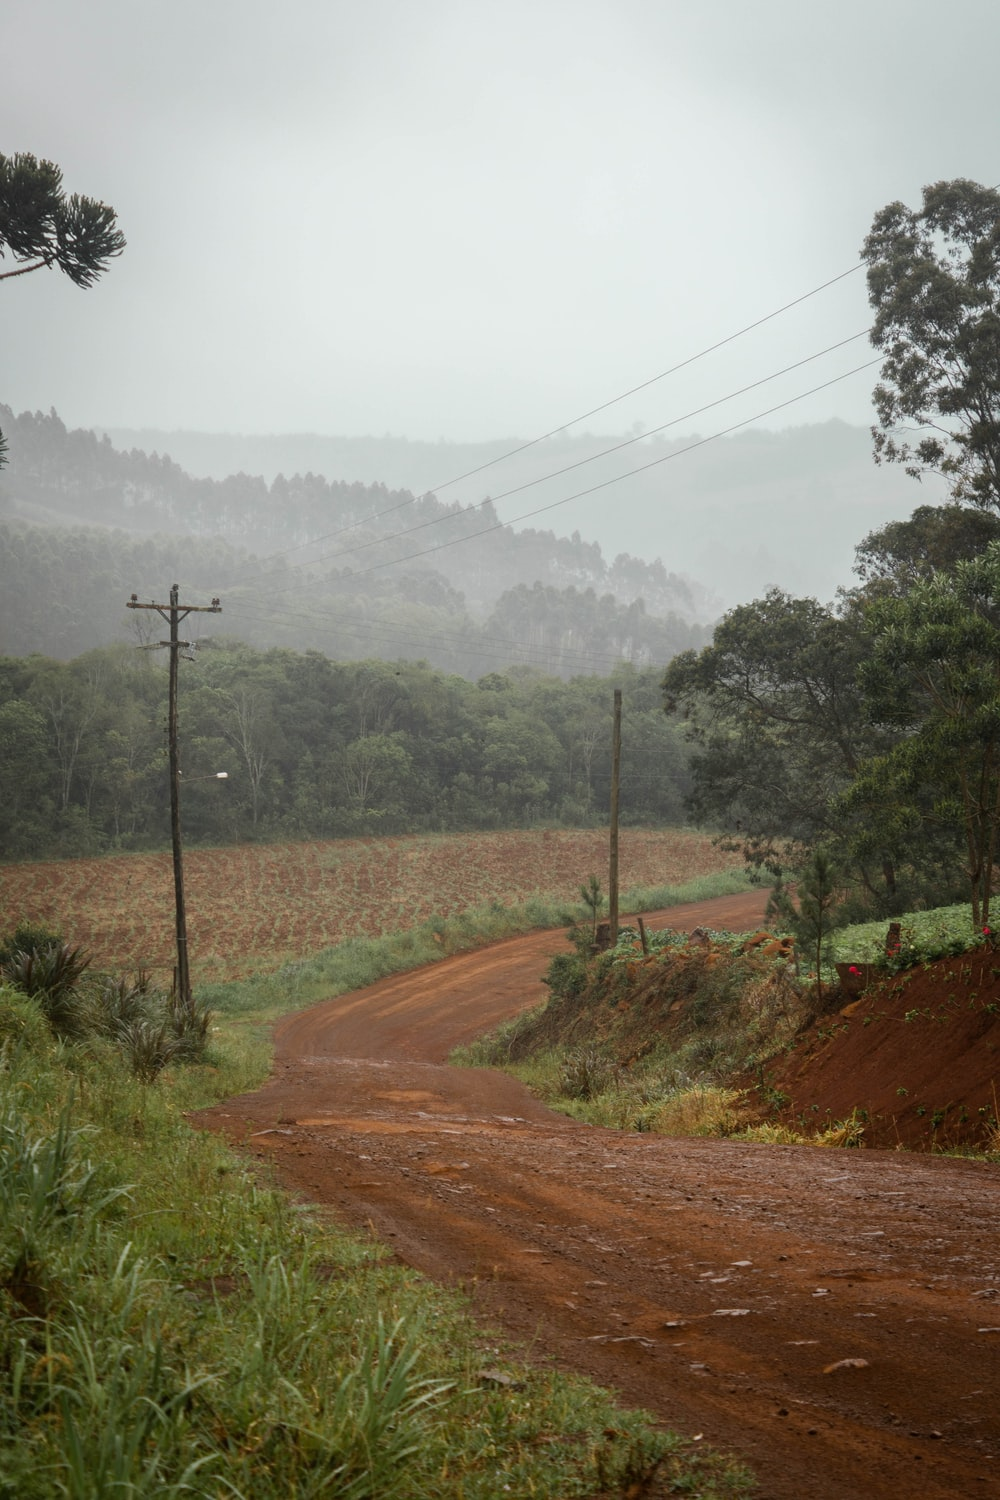 dirt road during daytime